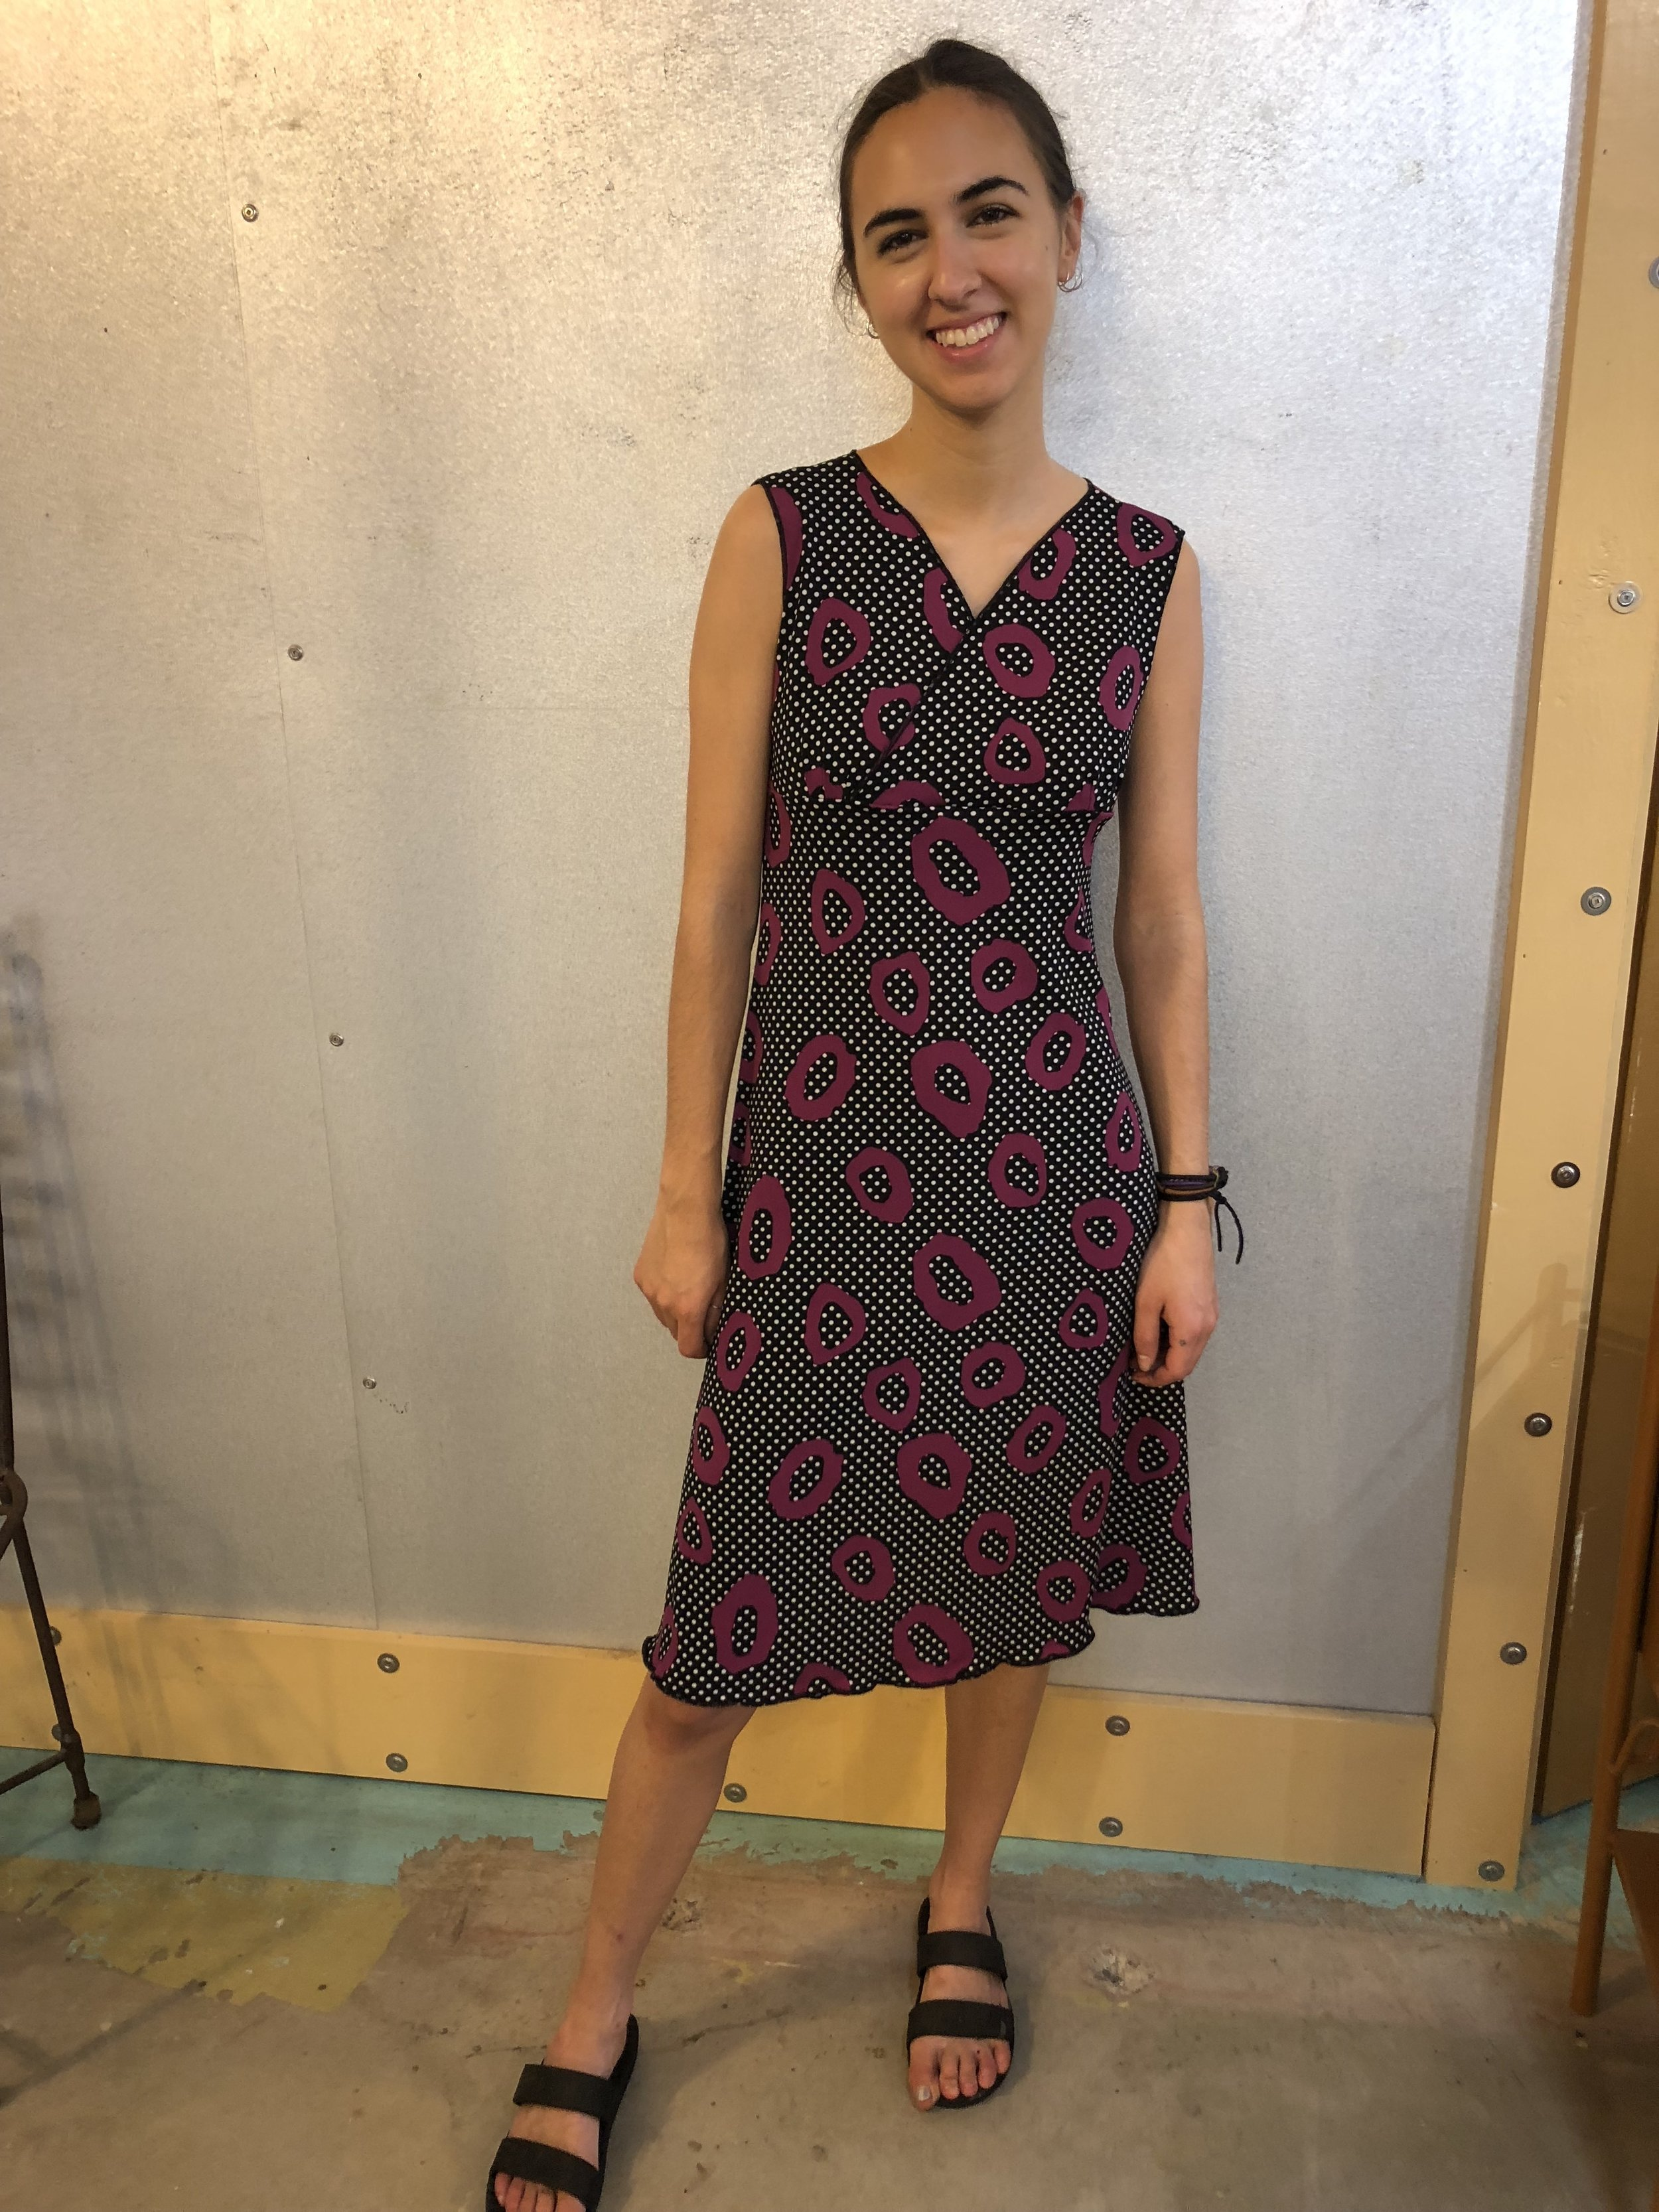 Pattiy Torno dress